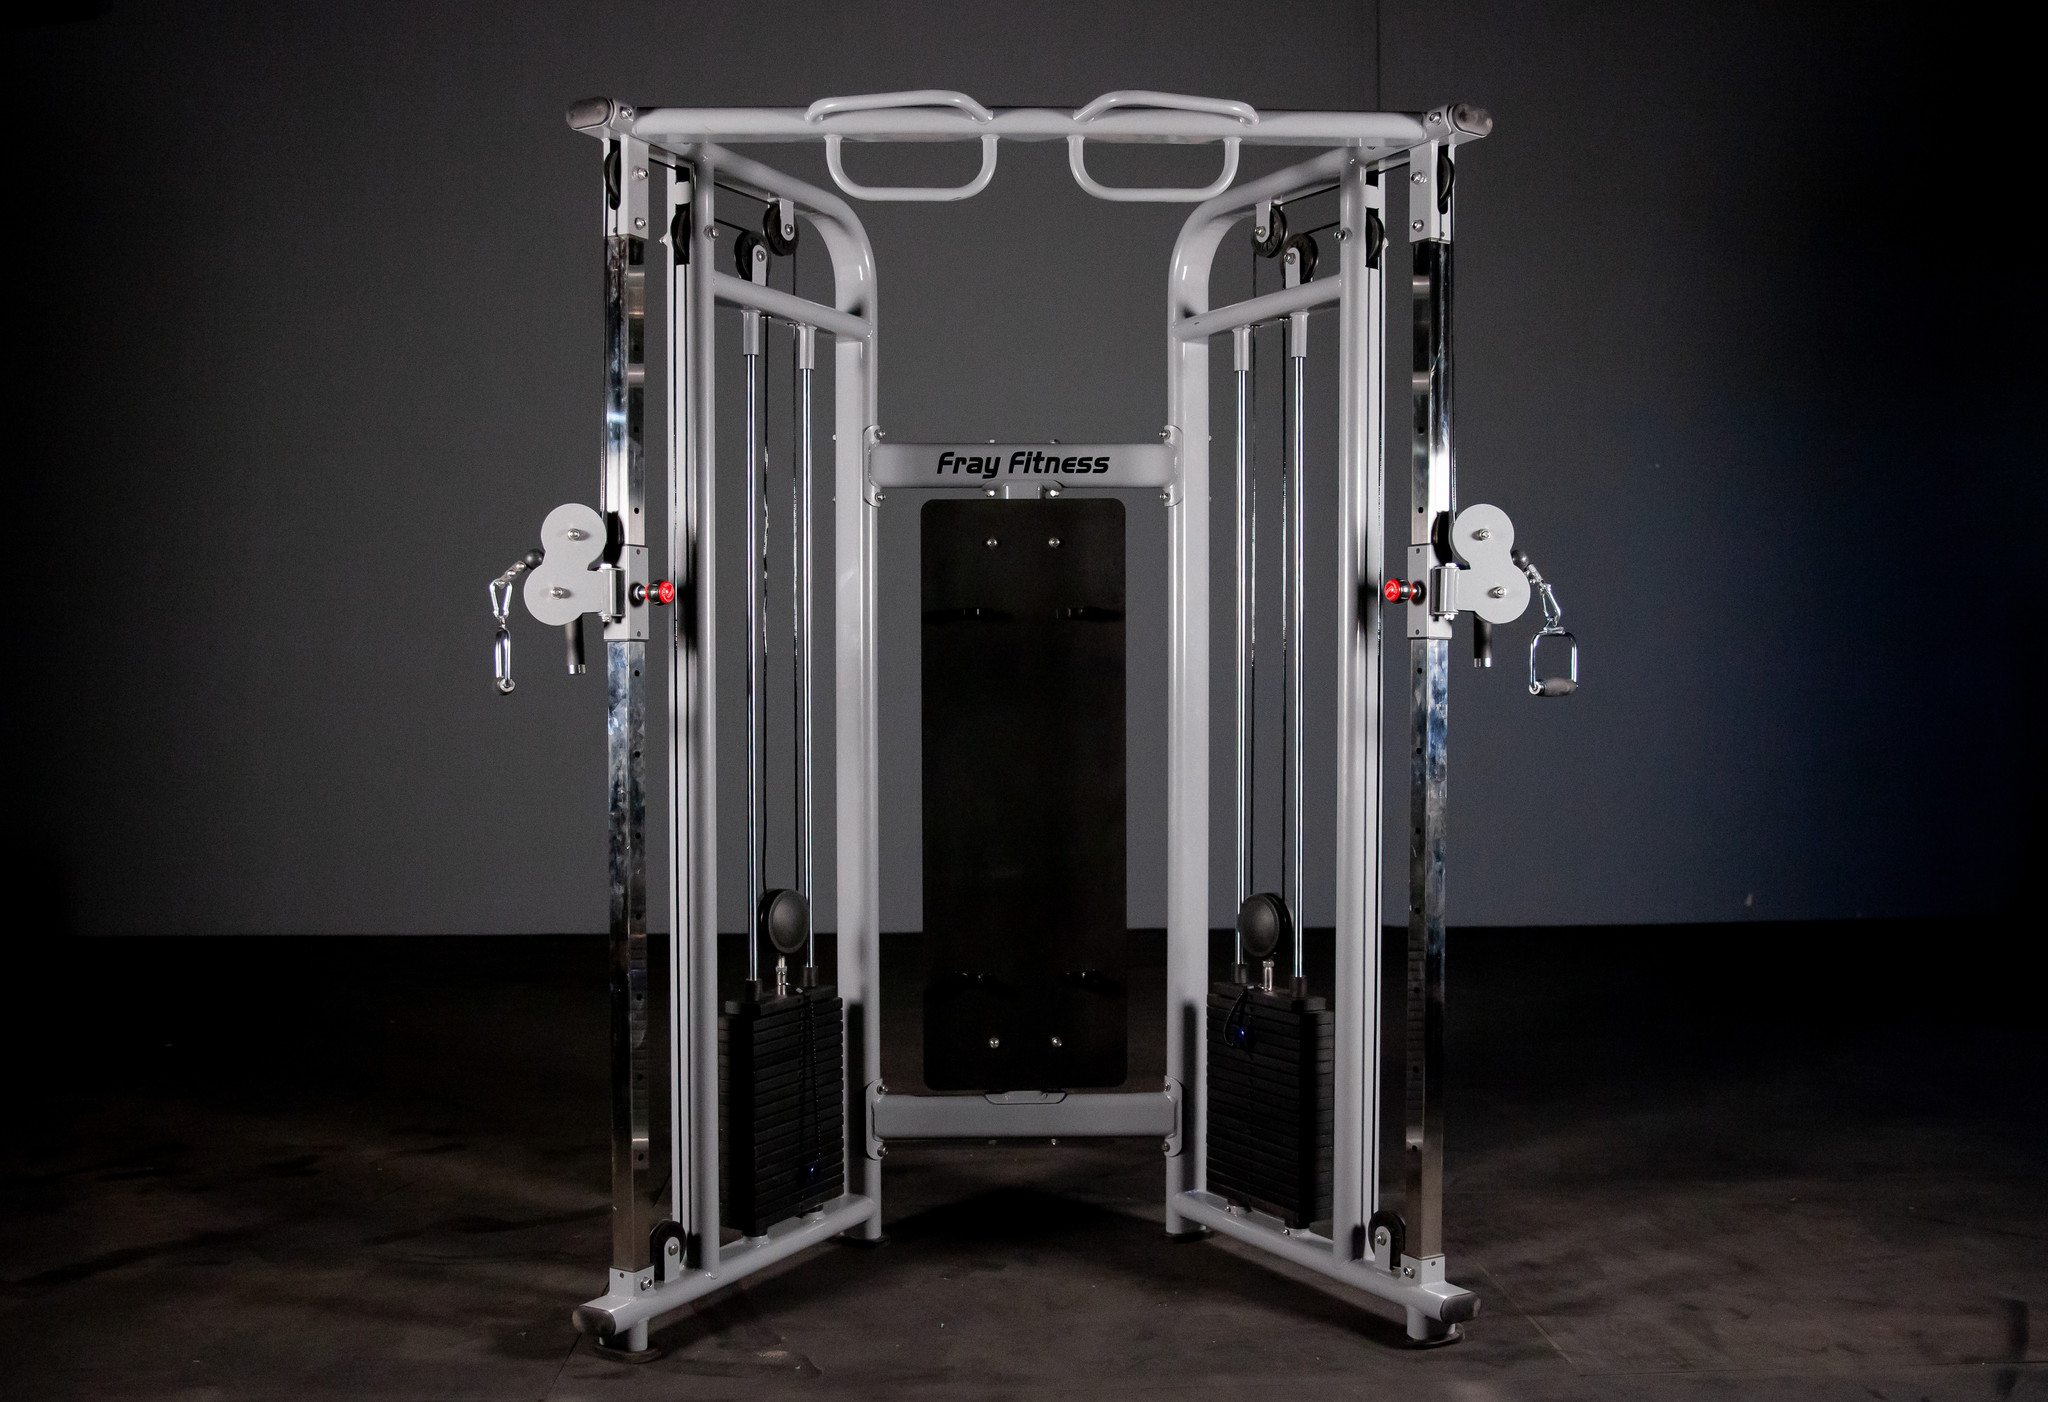 Fray Fitness functional trainer